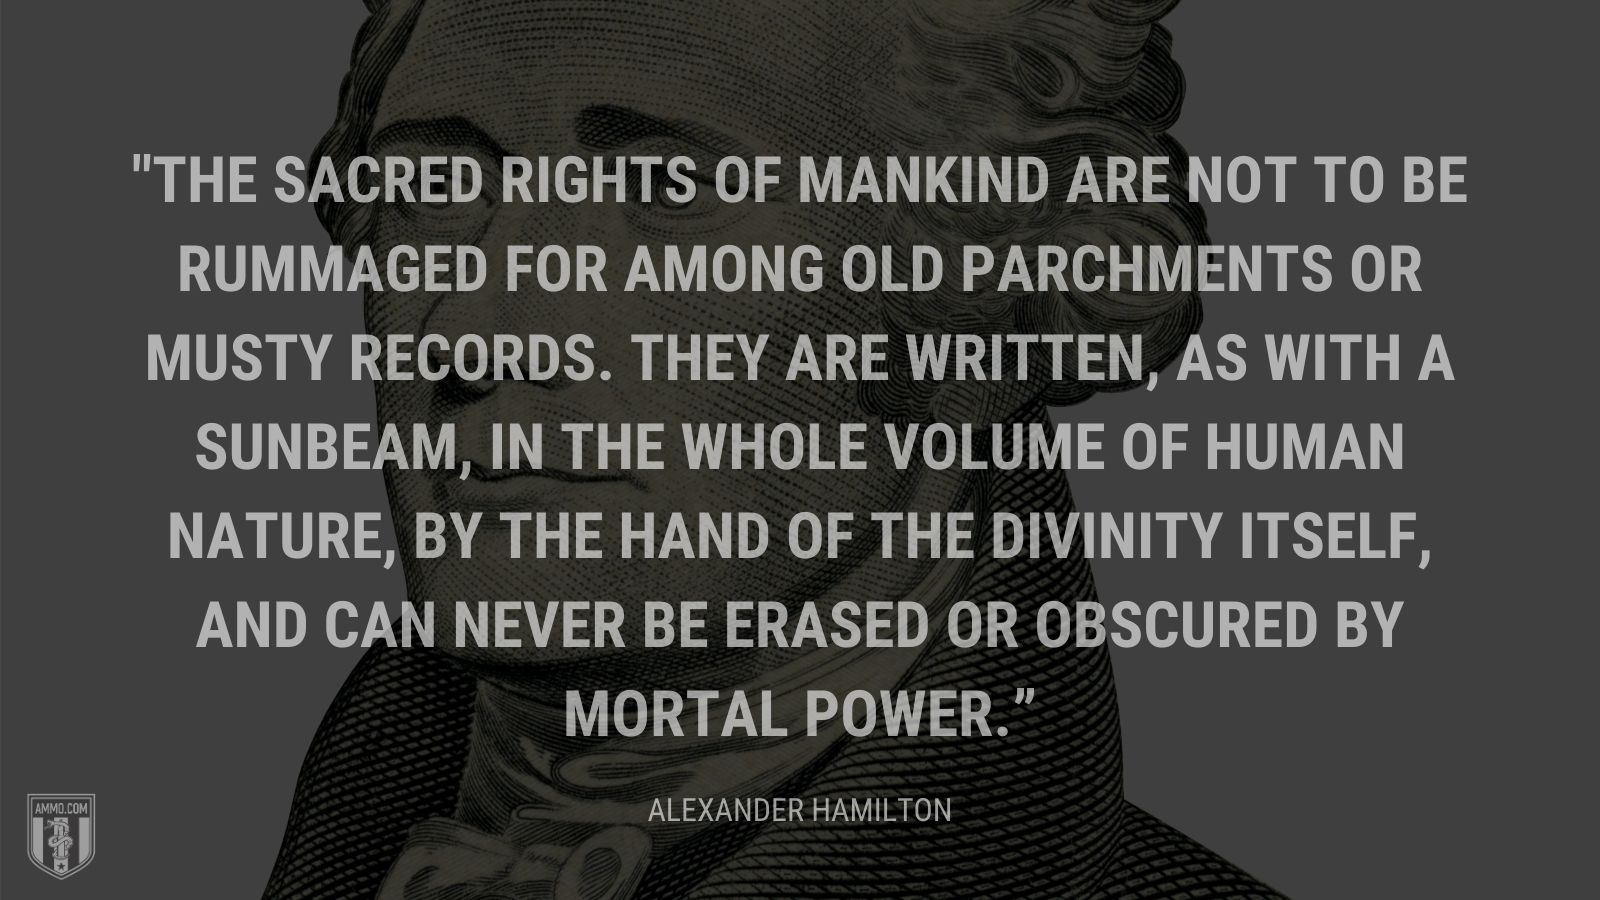 """The sacred rights of mankind are not to be rummaged for among old parchments or musty records. They are written, as with a sunbeam, in the whole volume of human nature, by the hand of the divinity itself, and can never be erased or obscured by mortal power."" - Alexander Hamilton"